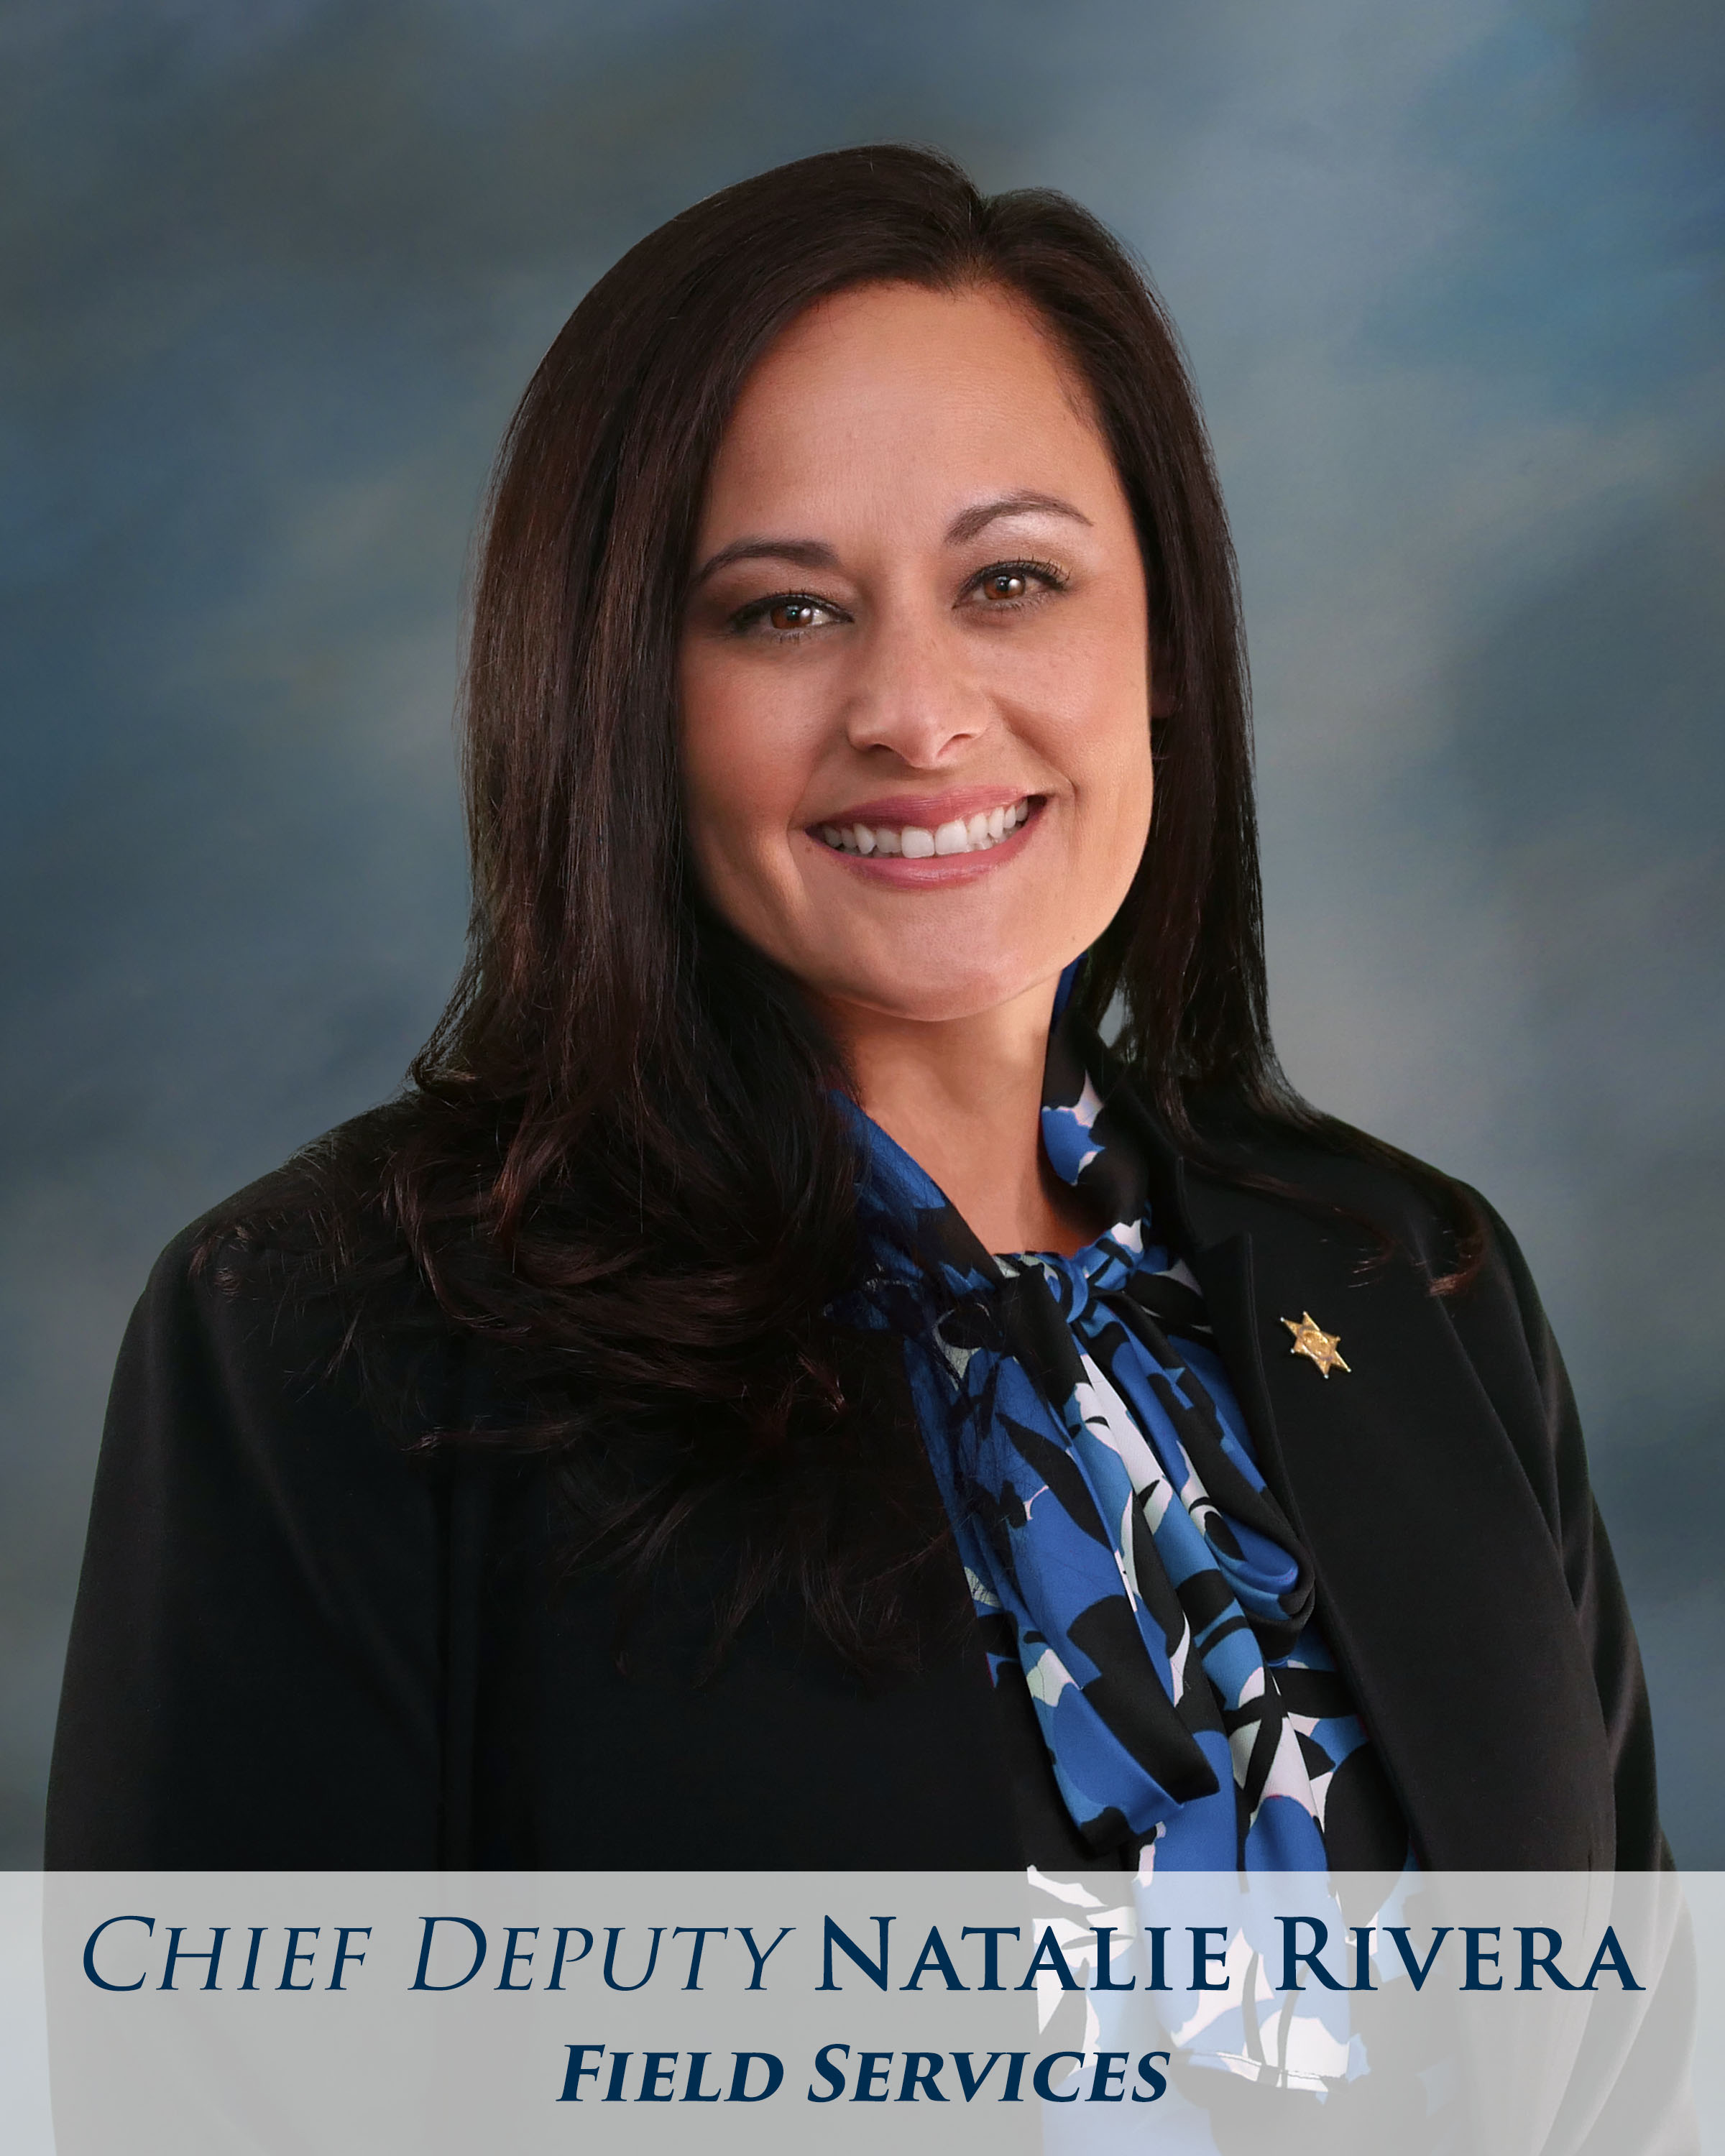 Chief Deputy Probation Officer Natalie Rivera